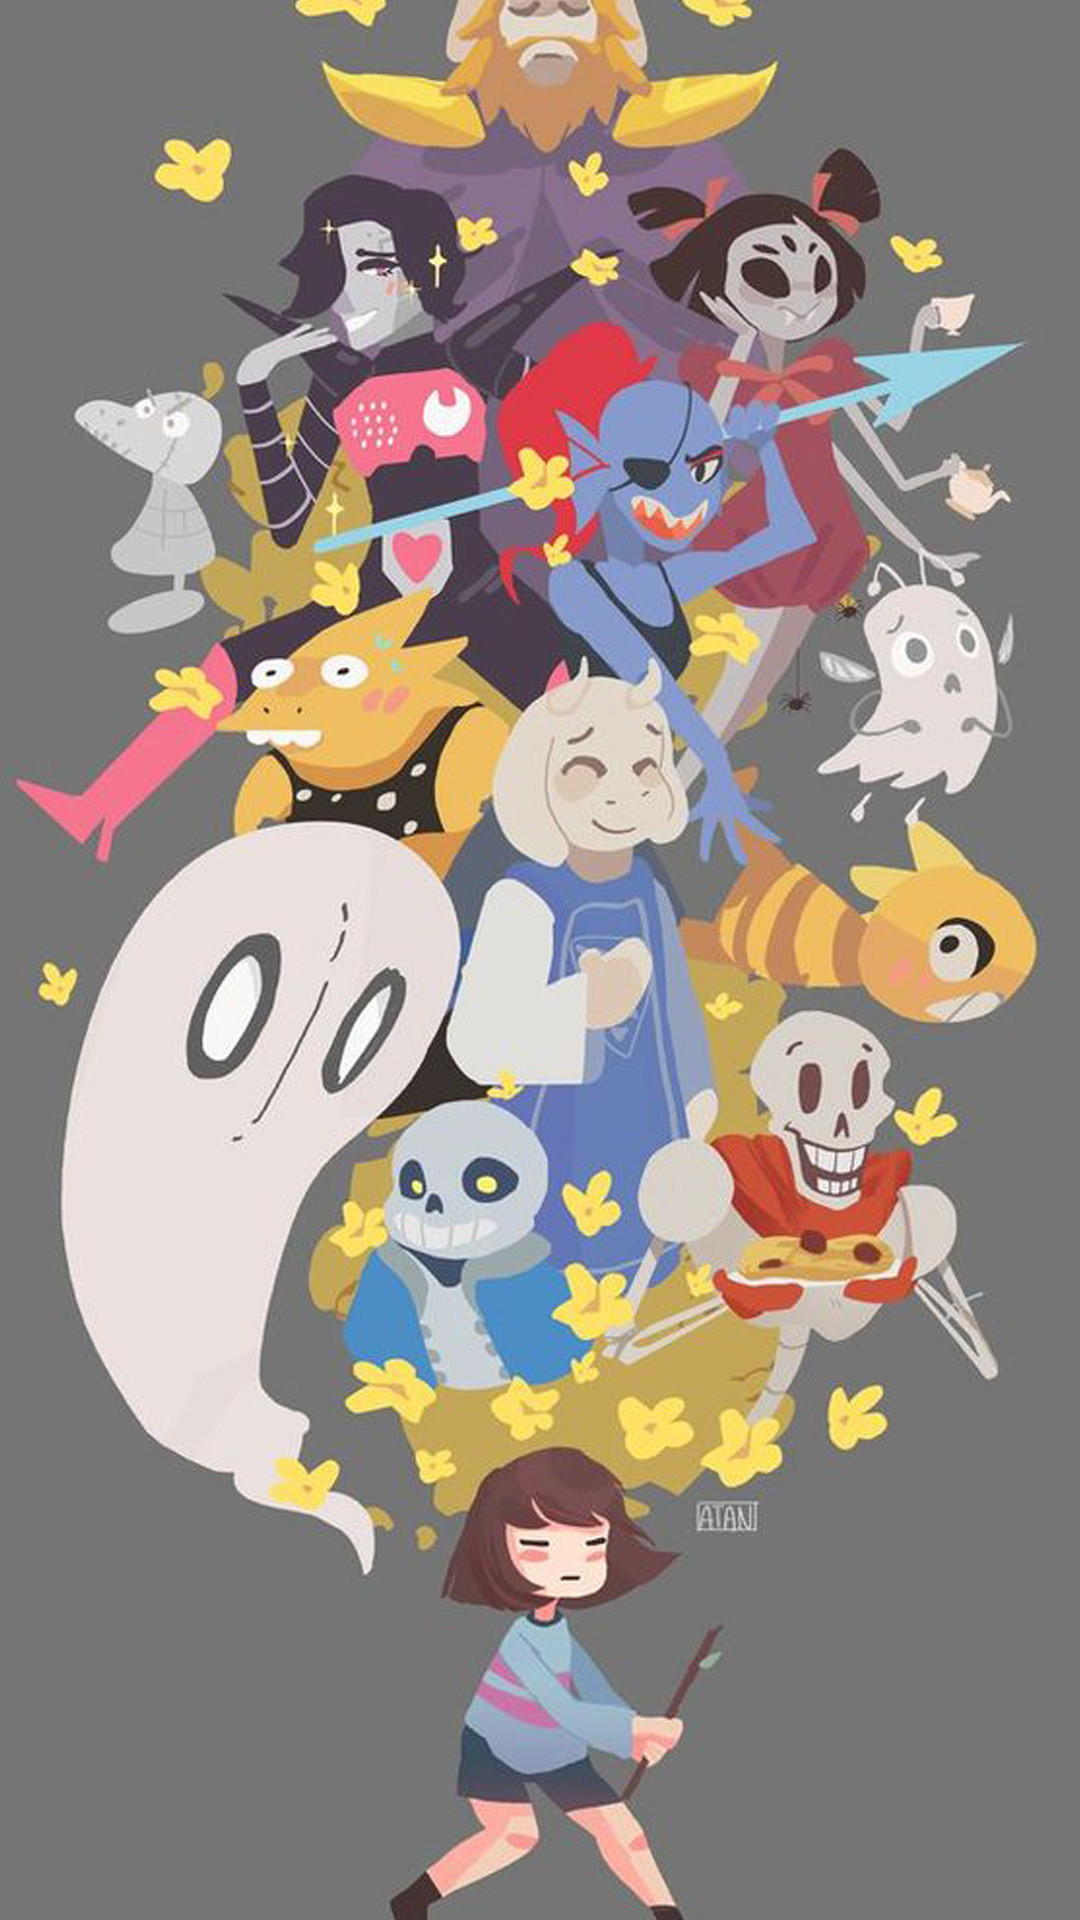 Undertale cool phone backgrounds Undertale cool iphone wallpapers